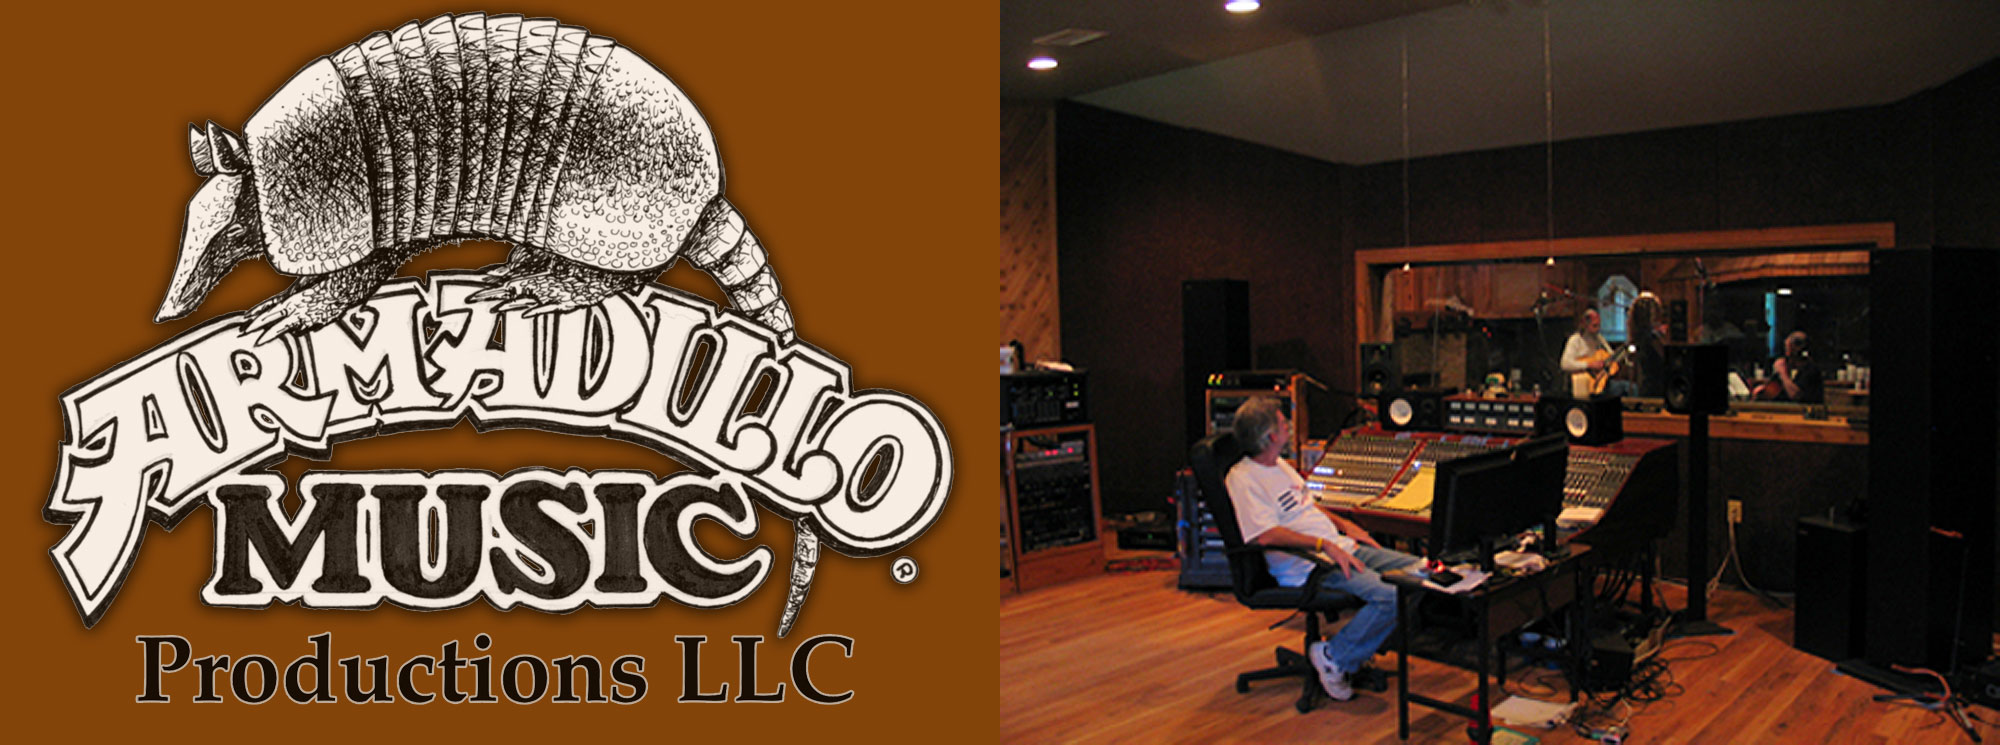 Armadillo Music Productions